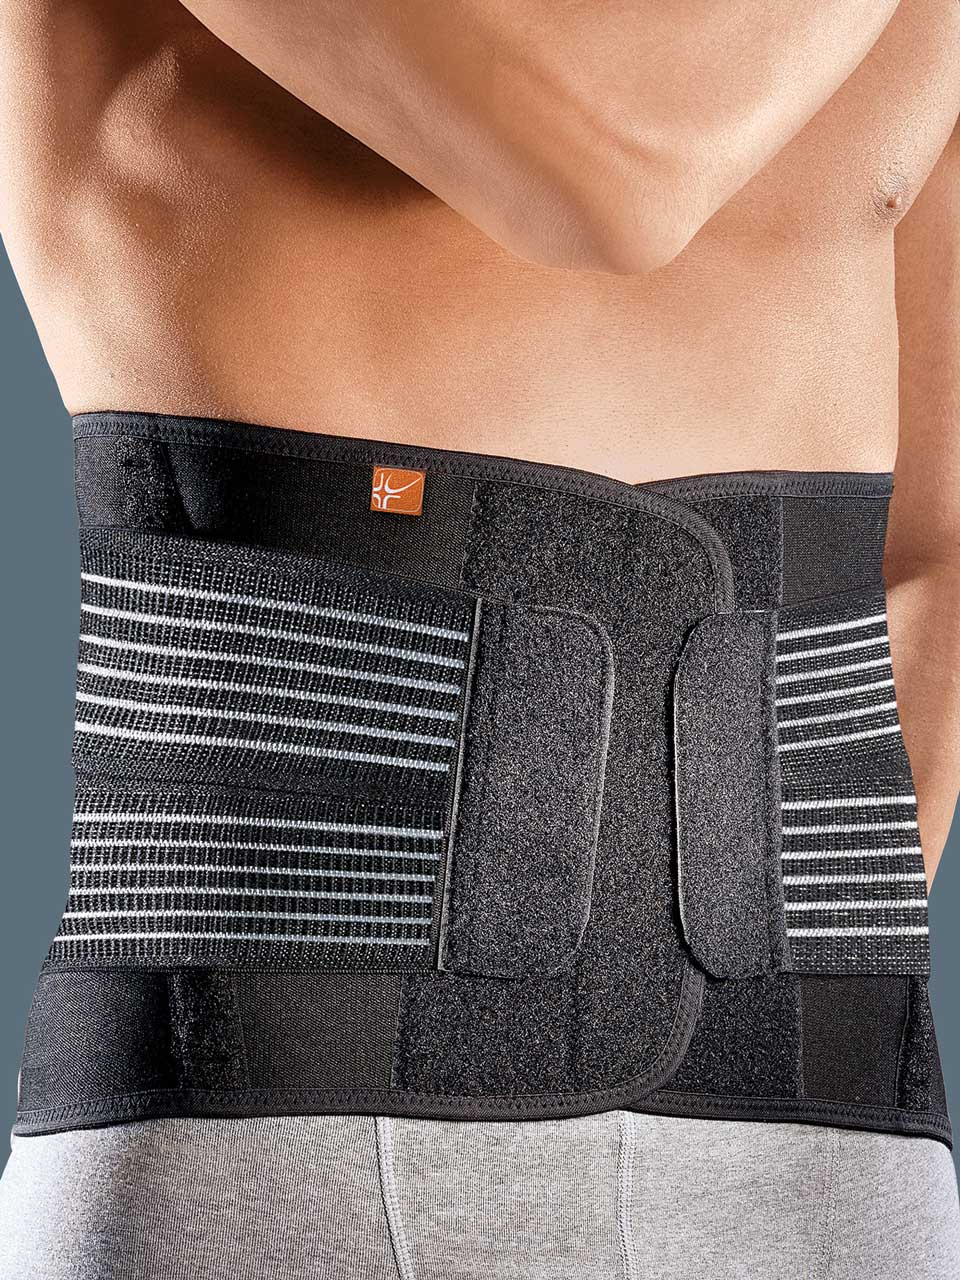 Lumbofit70 -  Low elastic lumbar orthosis with a  thermoformable pad